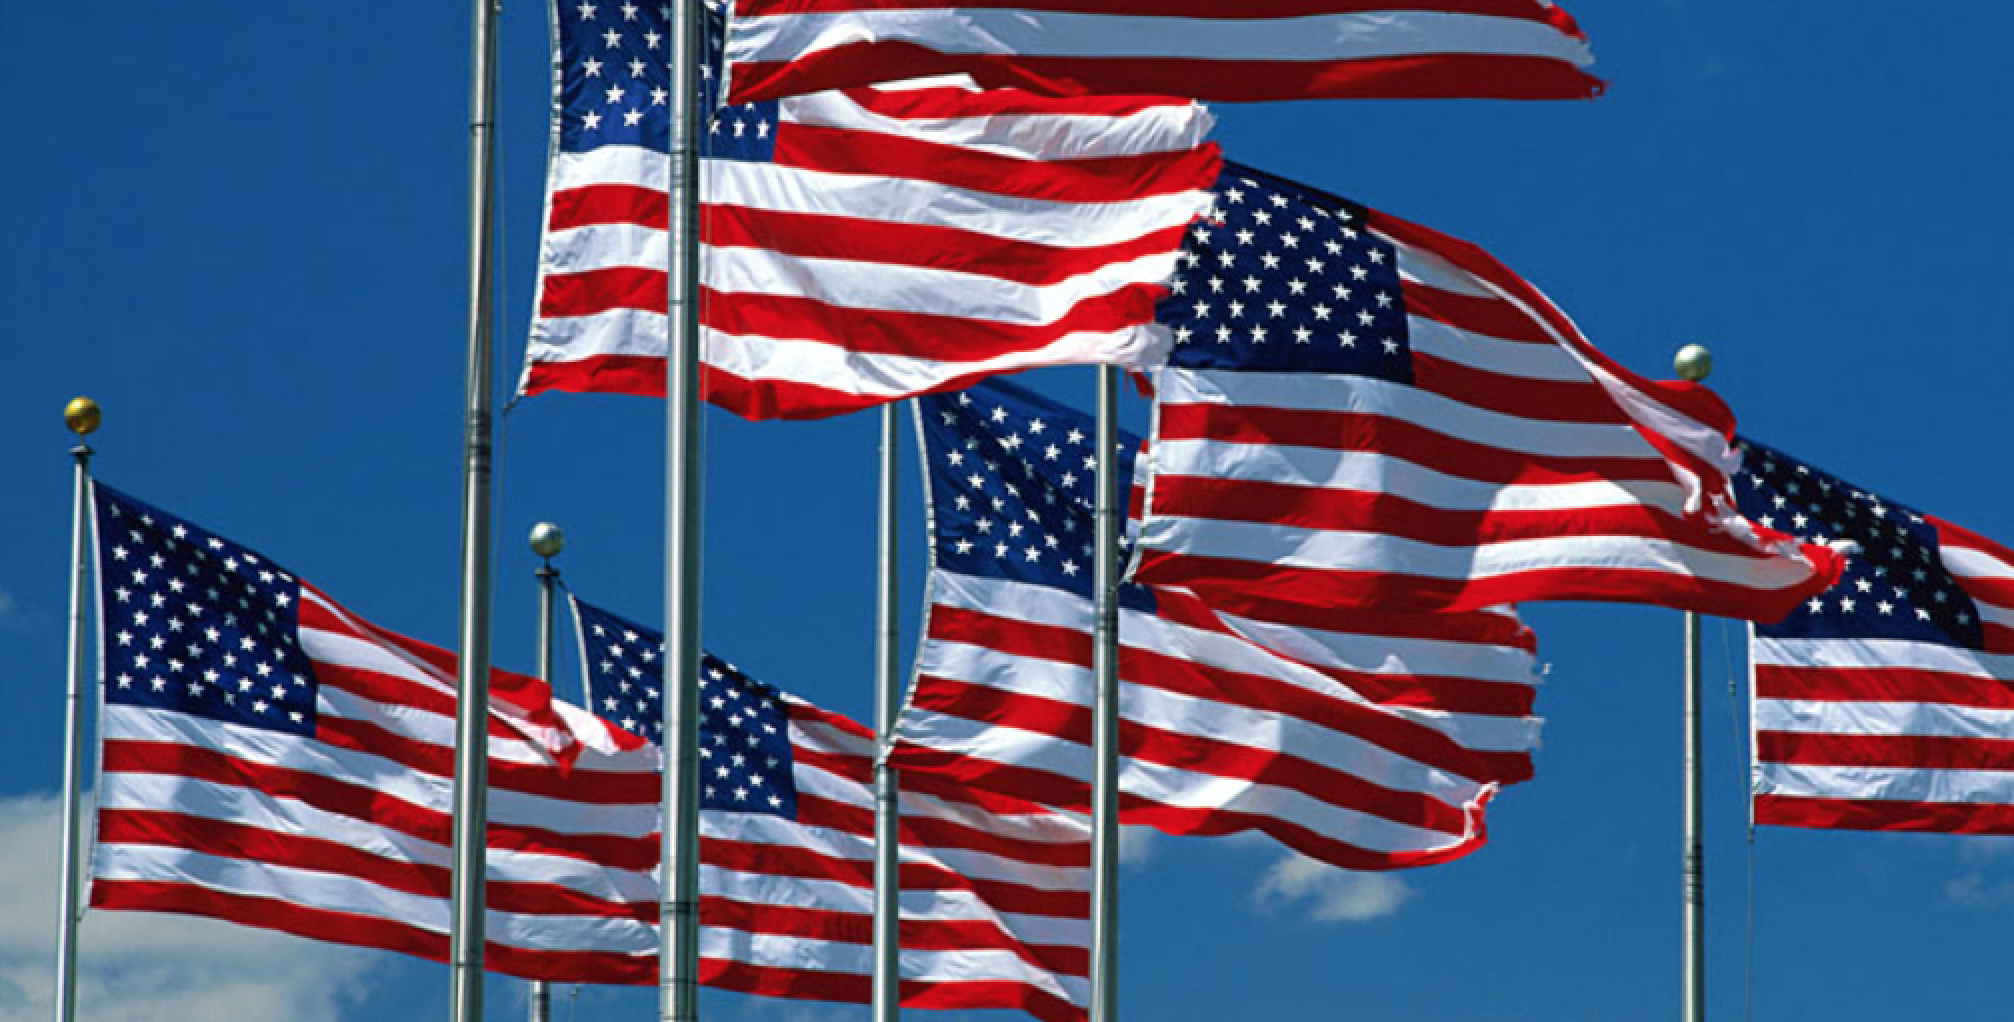 Honoring Our National Symbols Such As The Flag And The Anthem